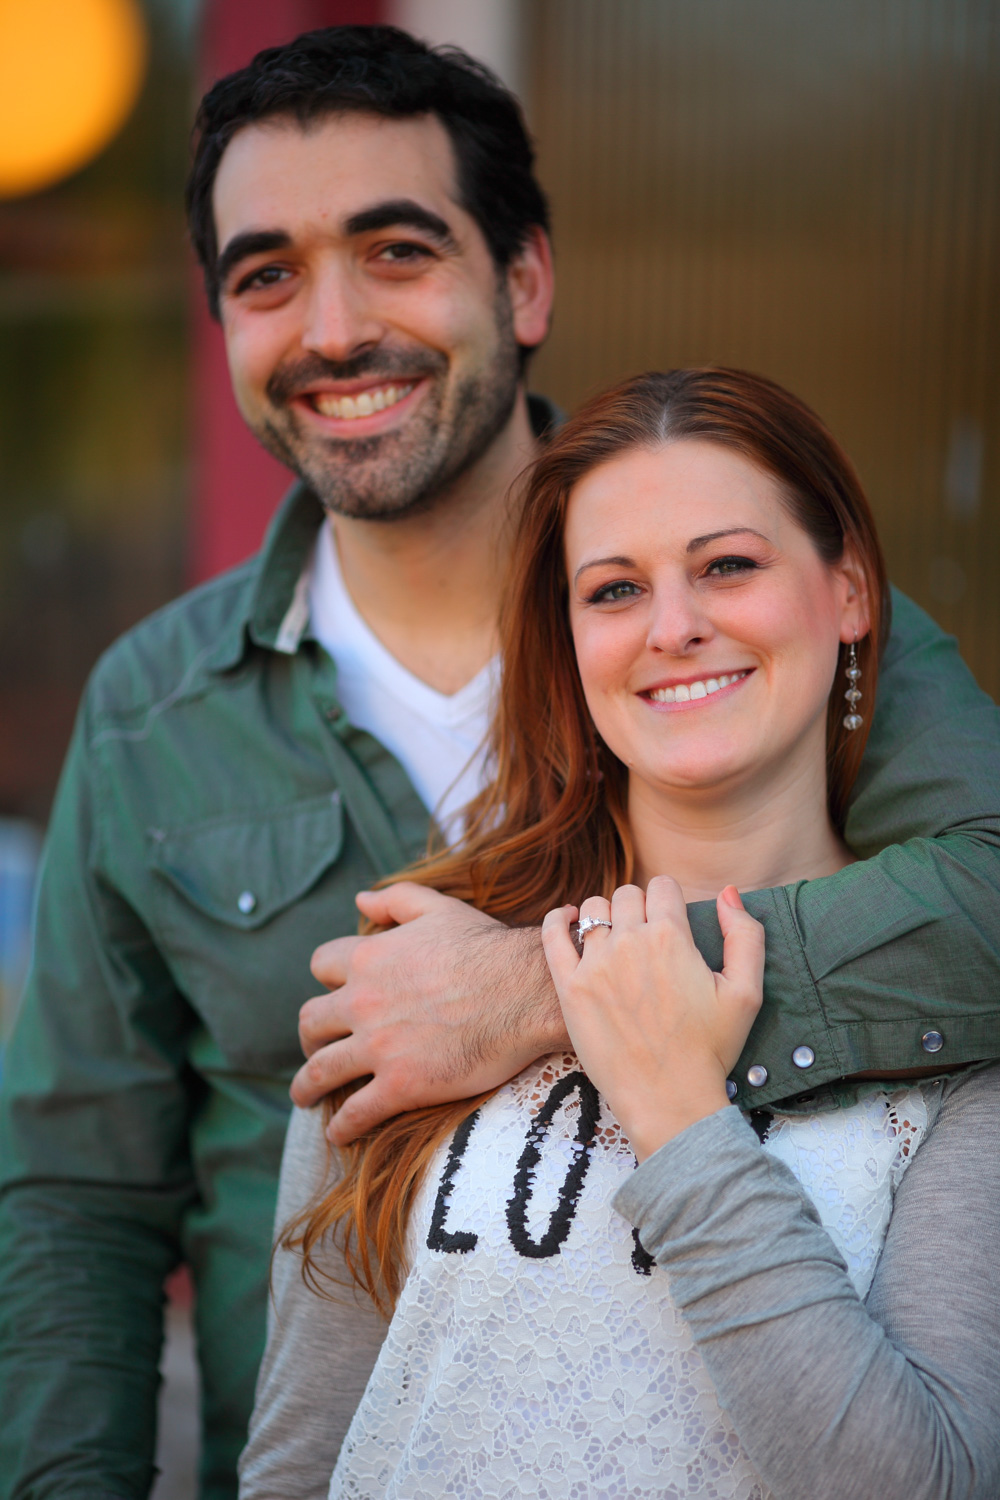 Engagement+Photos+Snohomish+Washington05.jpg